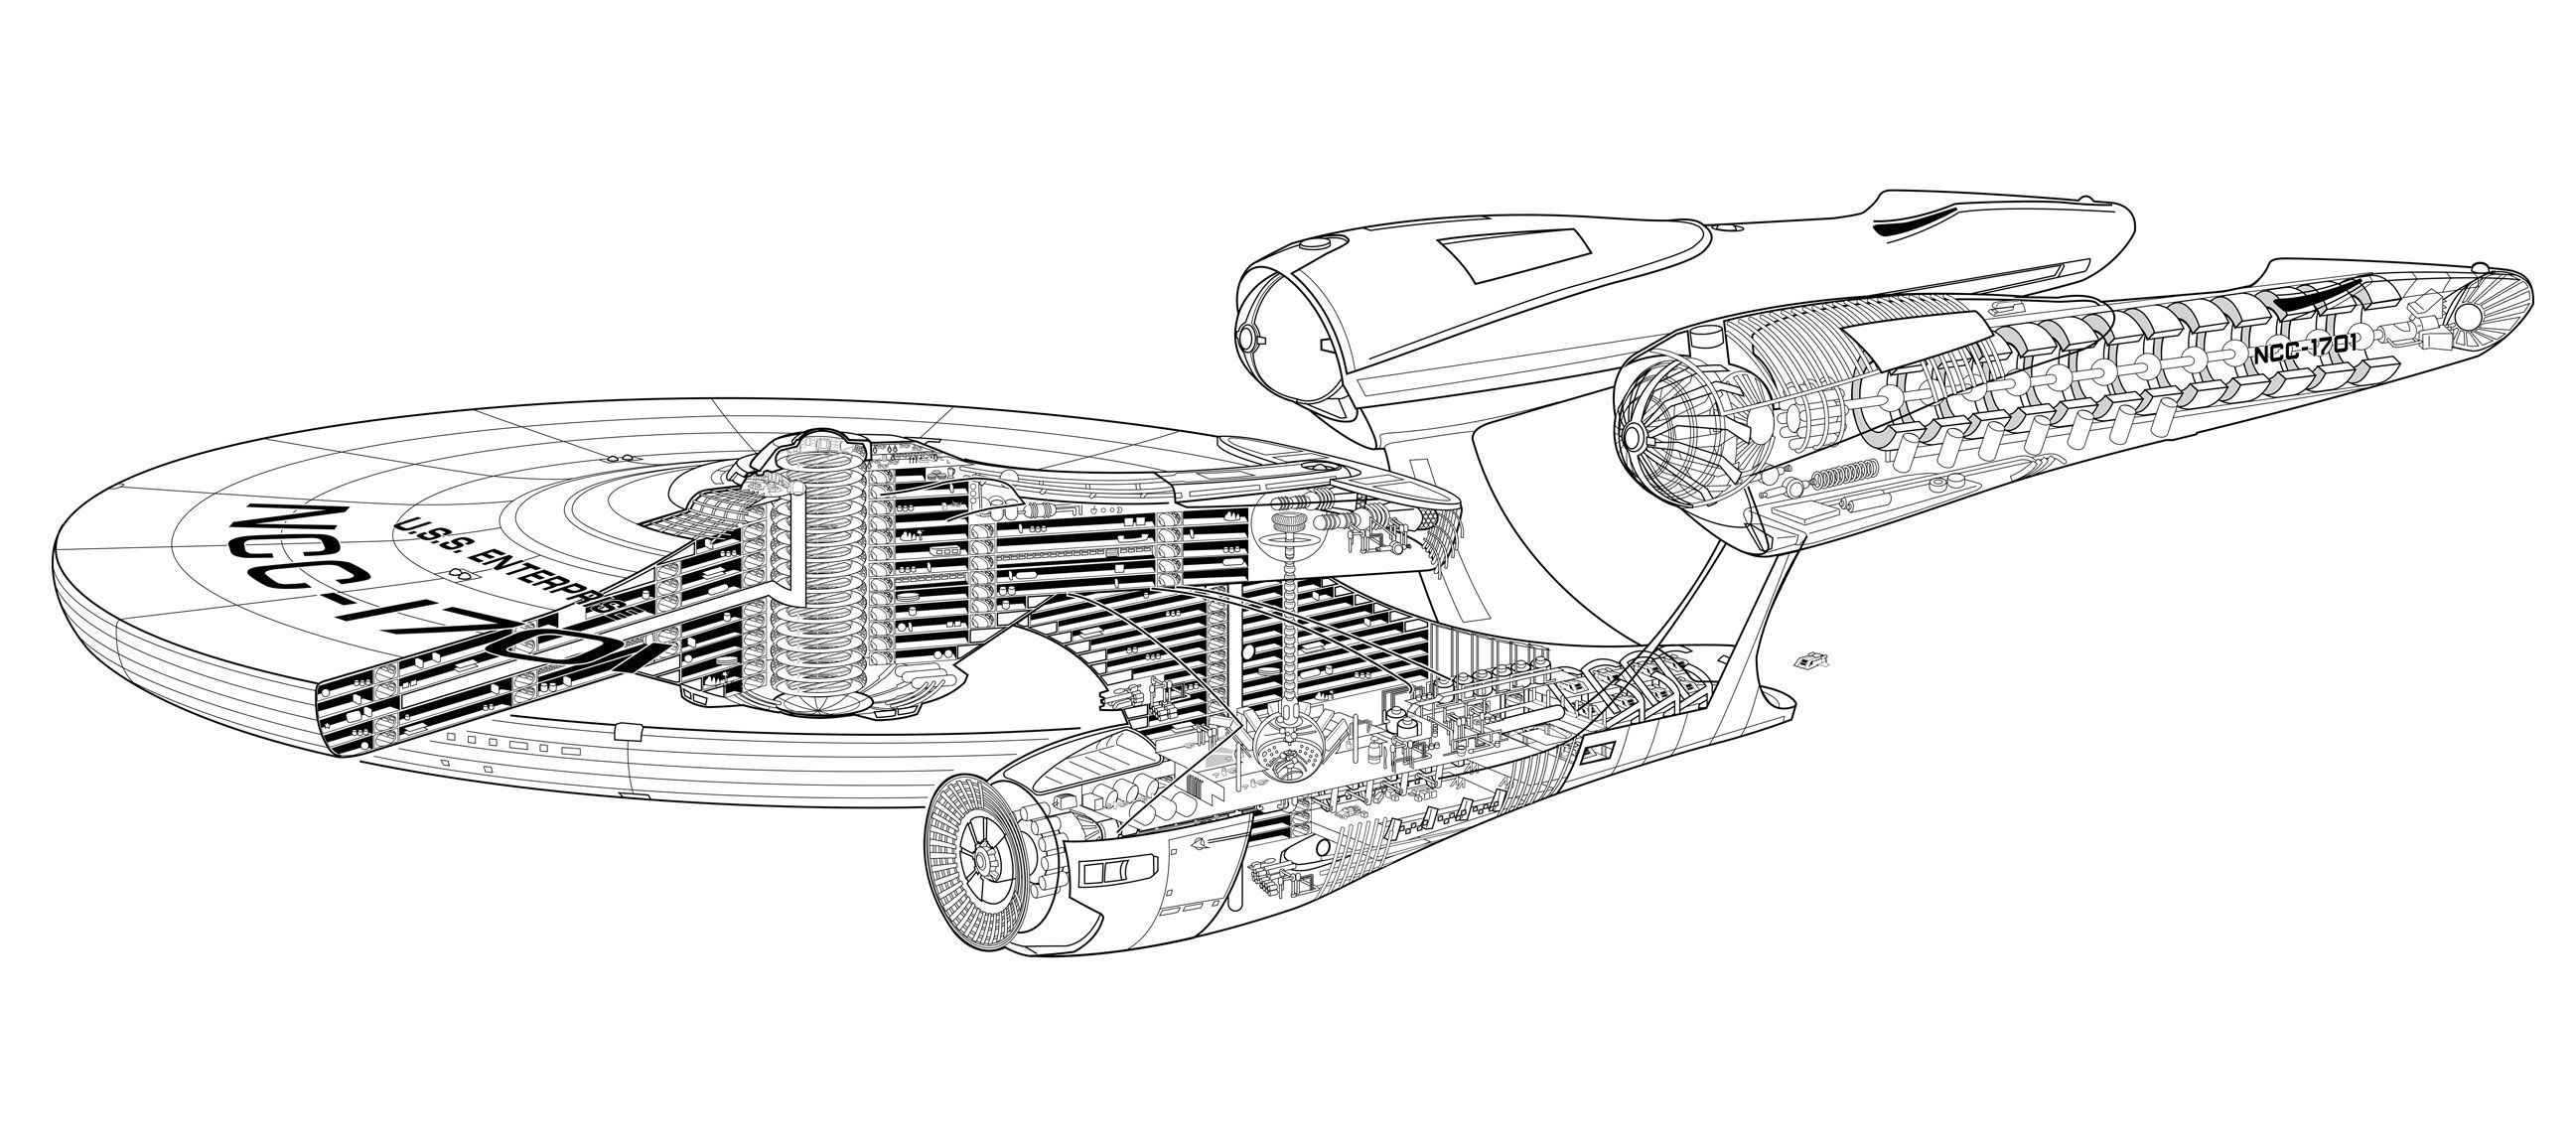 new uss enterprise cutaway i ve got to get off this planet